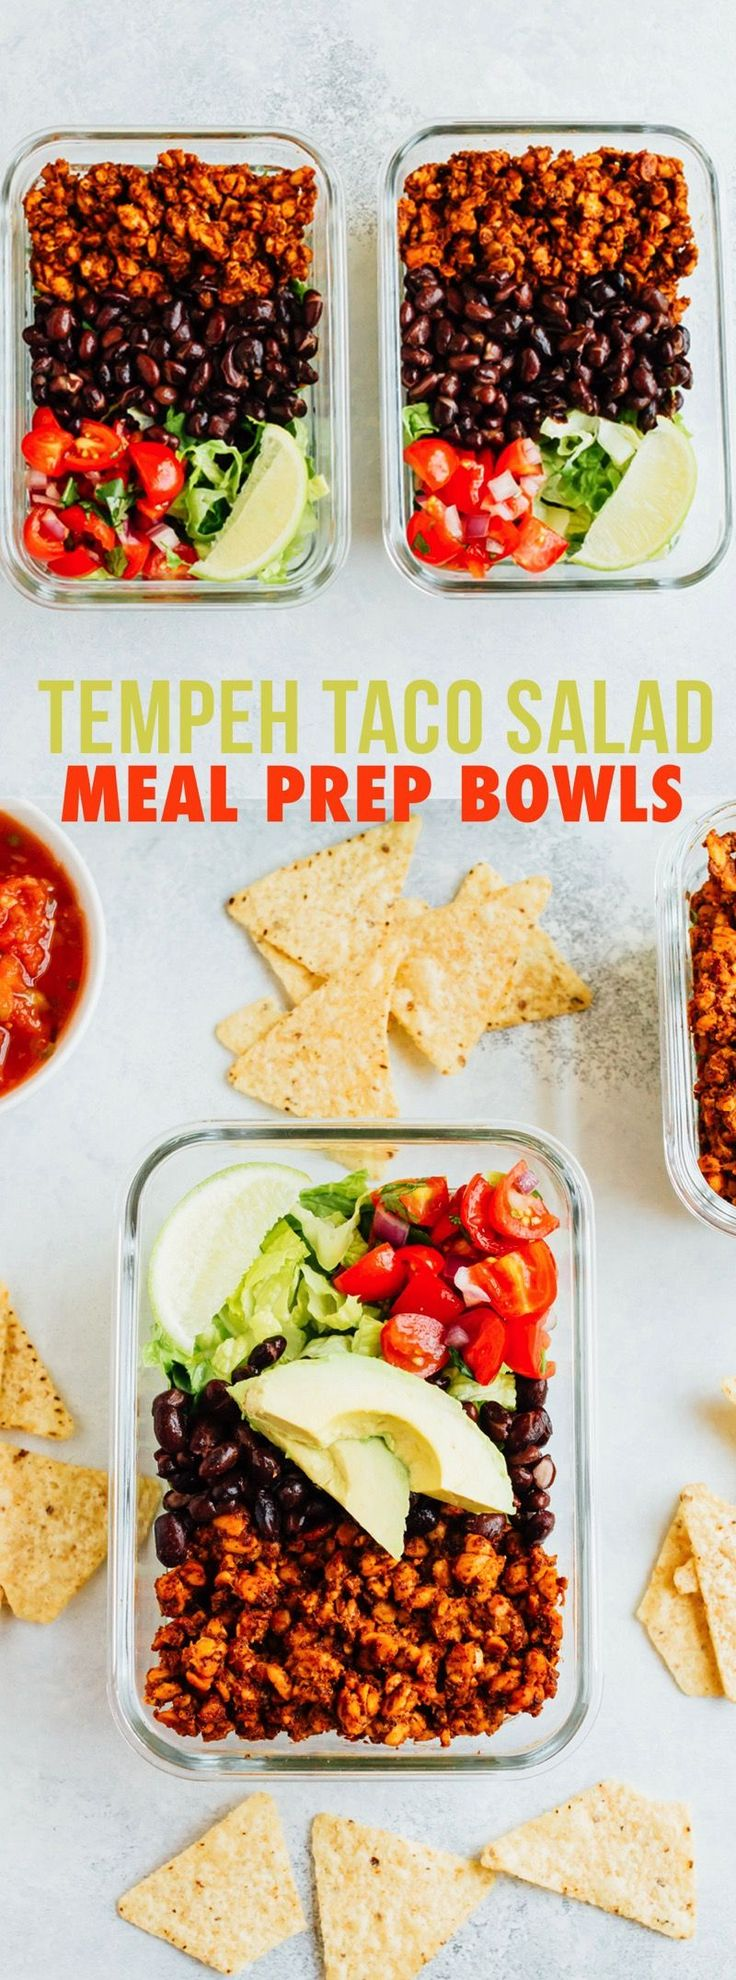 Tempeh Taco Salad Meal Prep Bowls with tempeh taco meat, black beans, tomatoes, onions and avocado